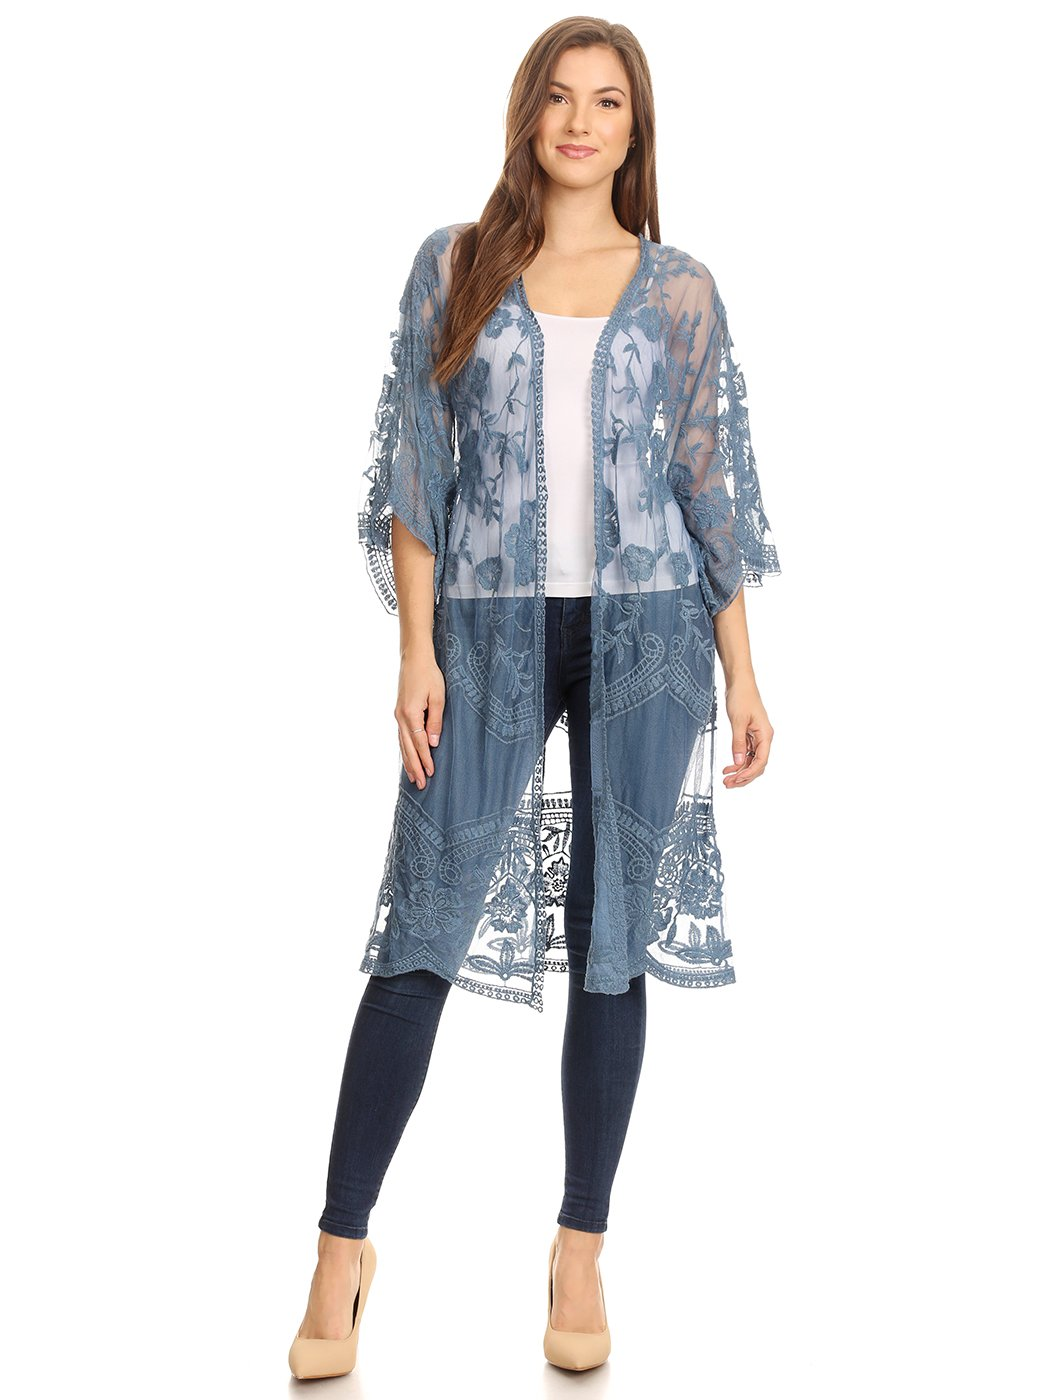 Anna-Kaci Womens Long Embroidered Lace Kimono Cardigan with Half Sleeves, Blue, OneSize